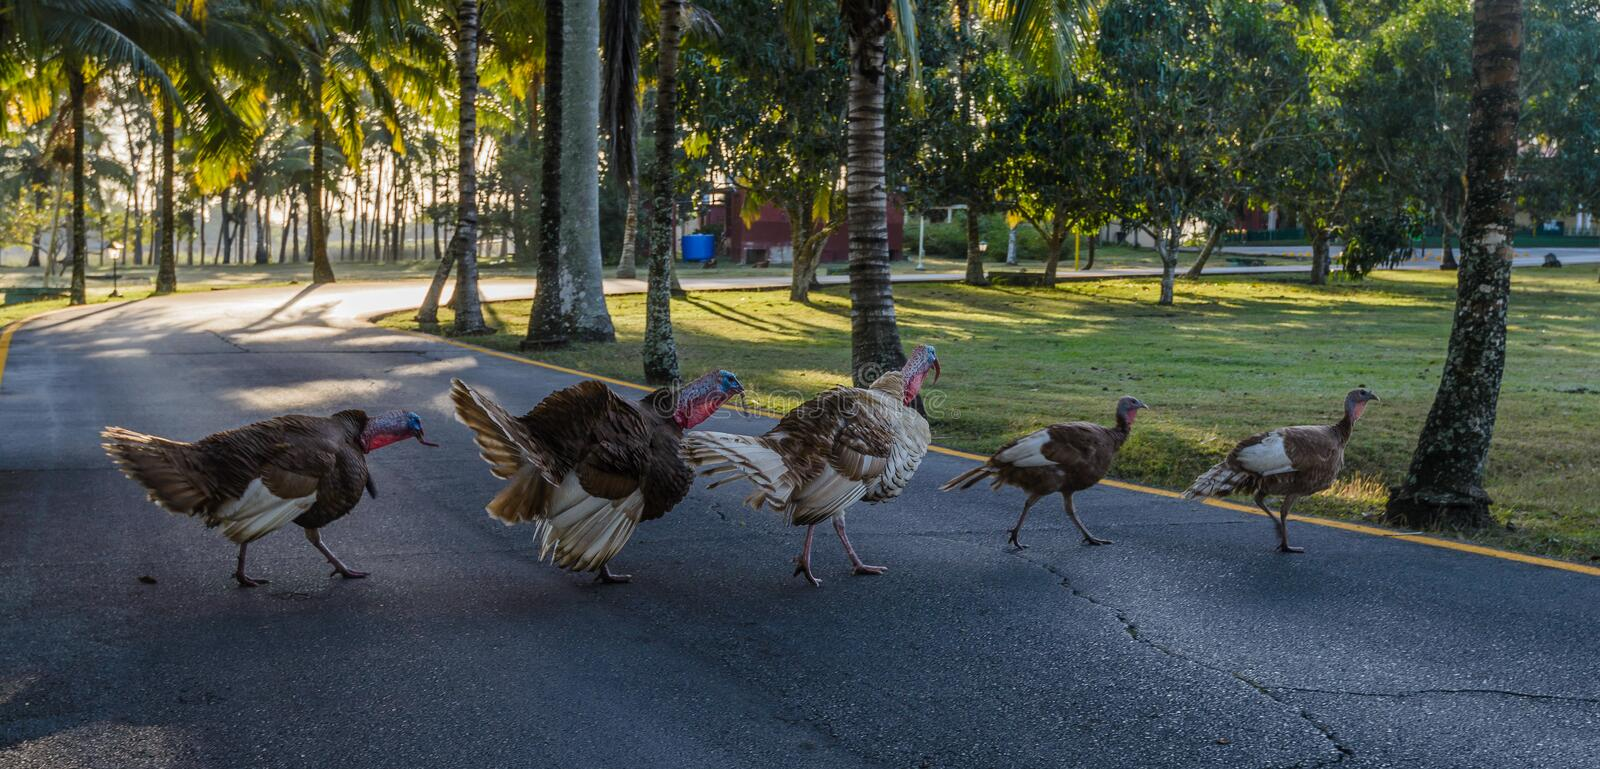 Group of free walking turkey birds and crossing a road stock photos